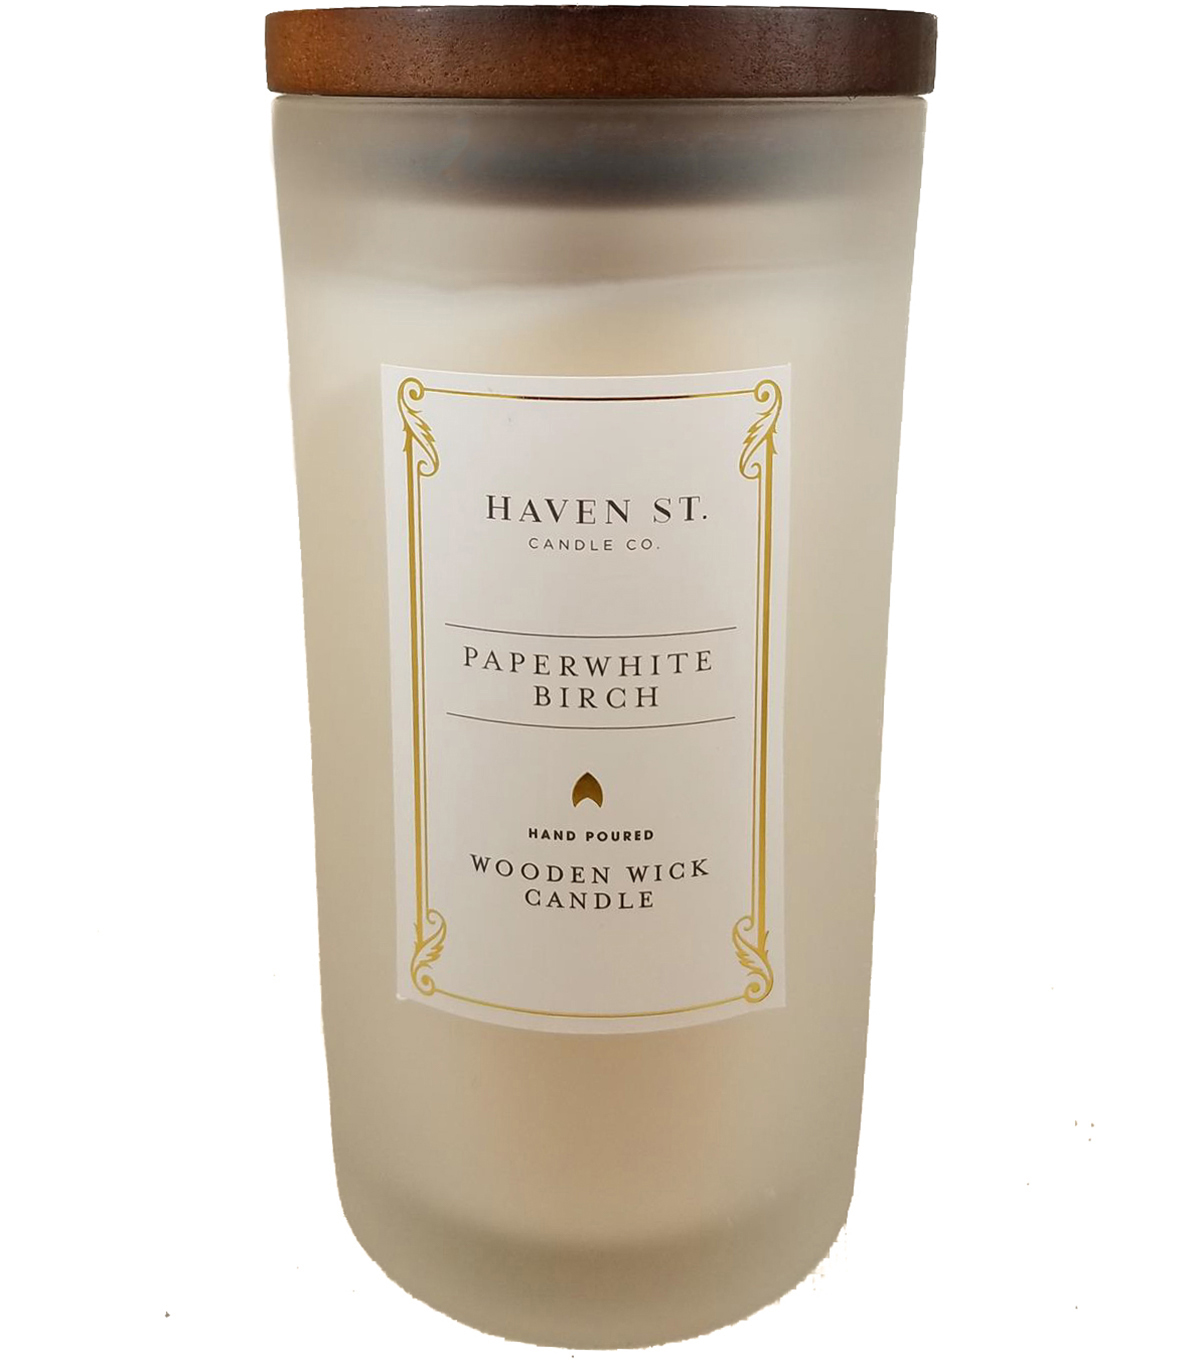 Haven St. 11oz Wooden Wick Jar Candle-Paperwhite Birch